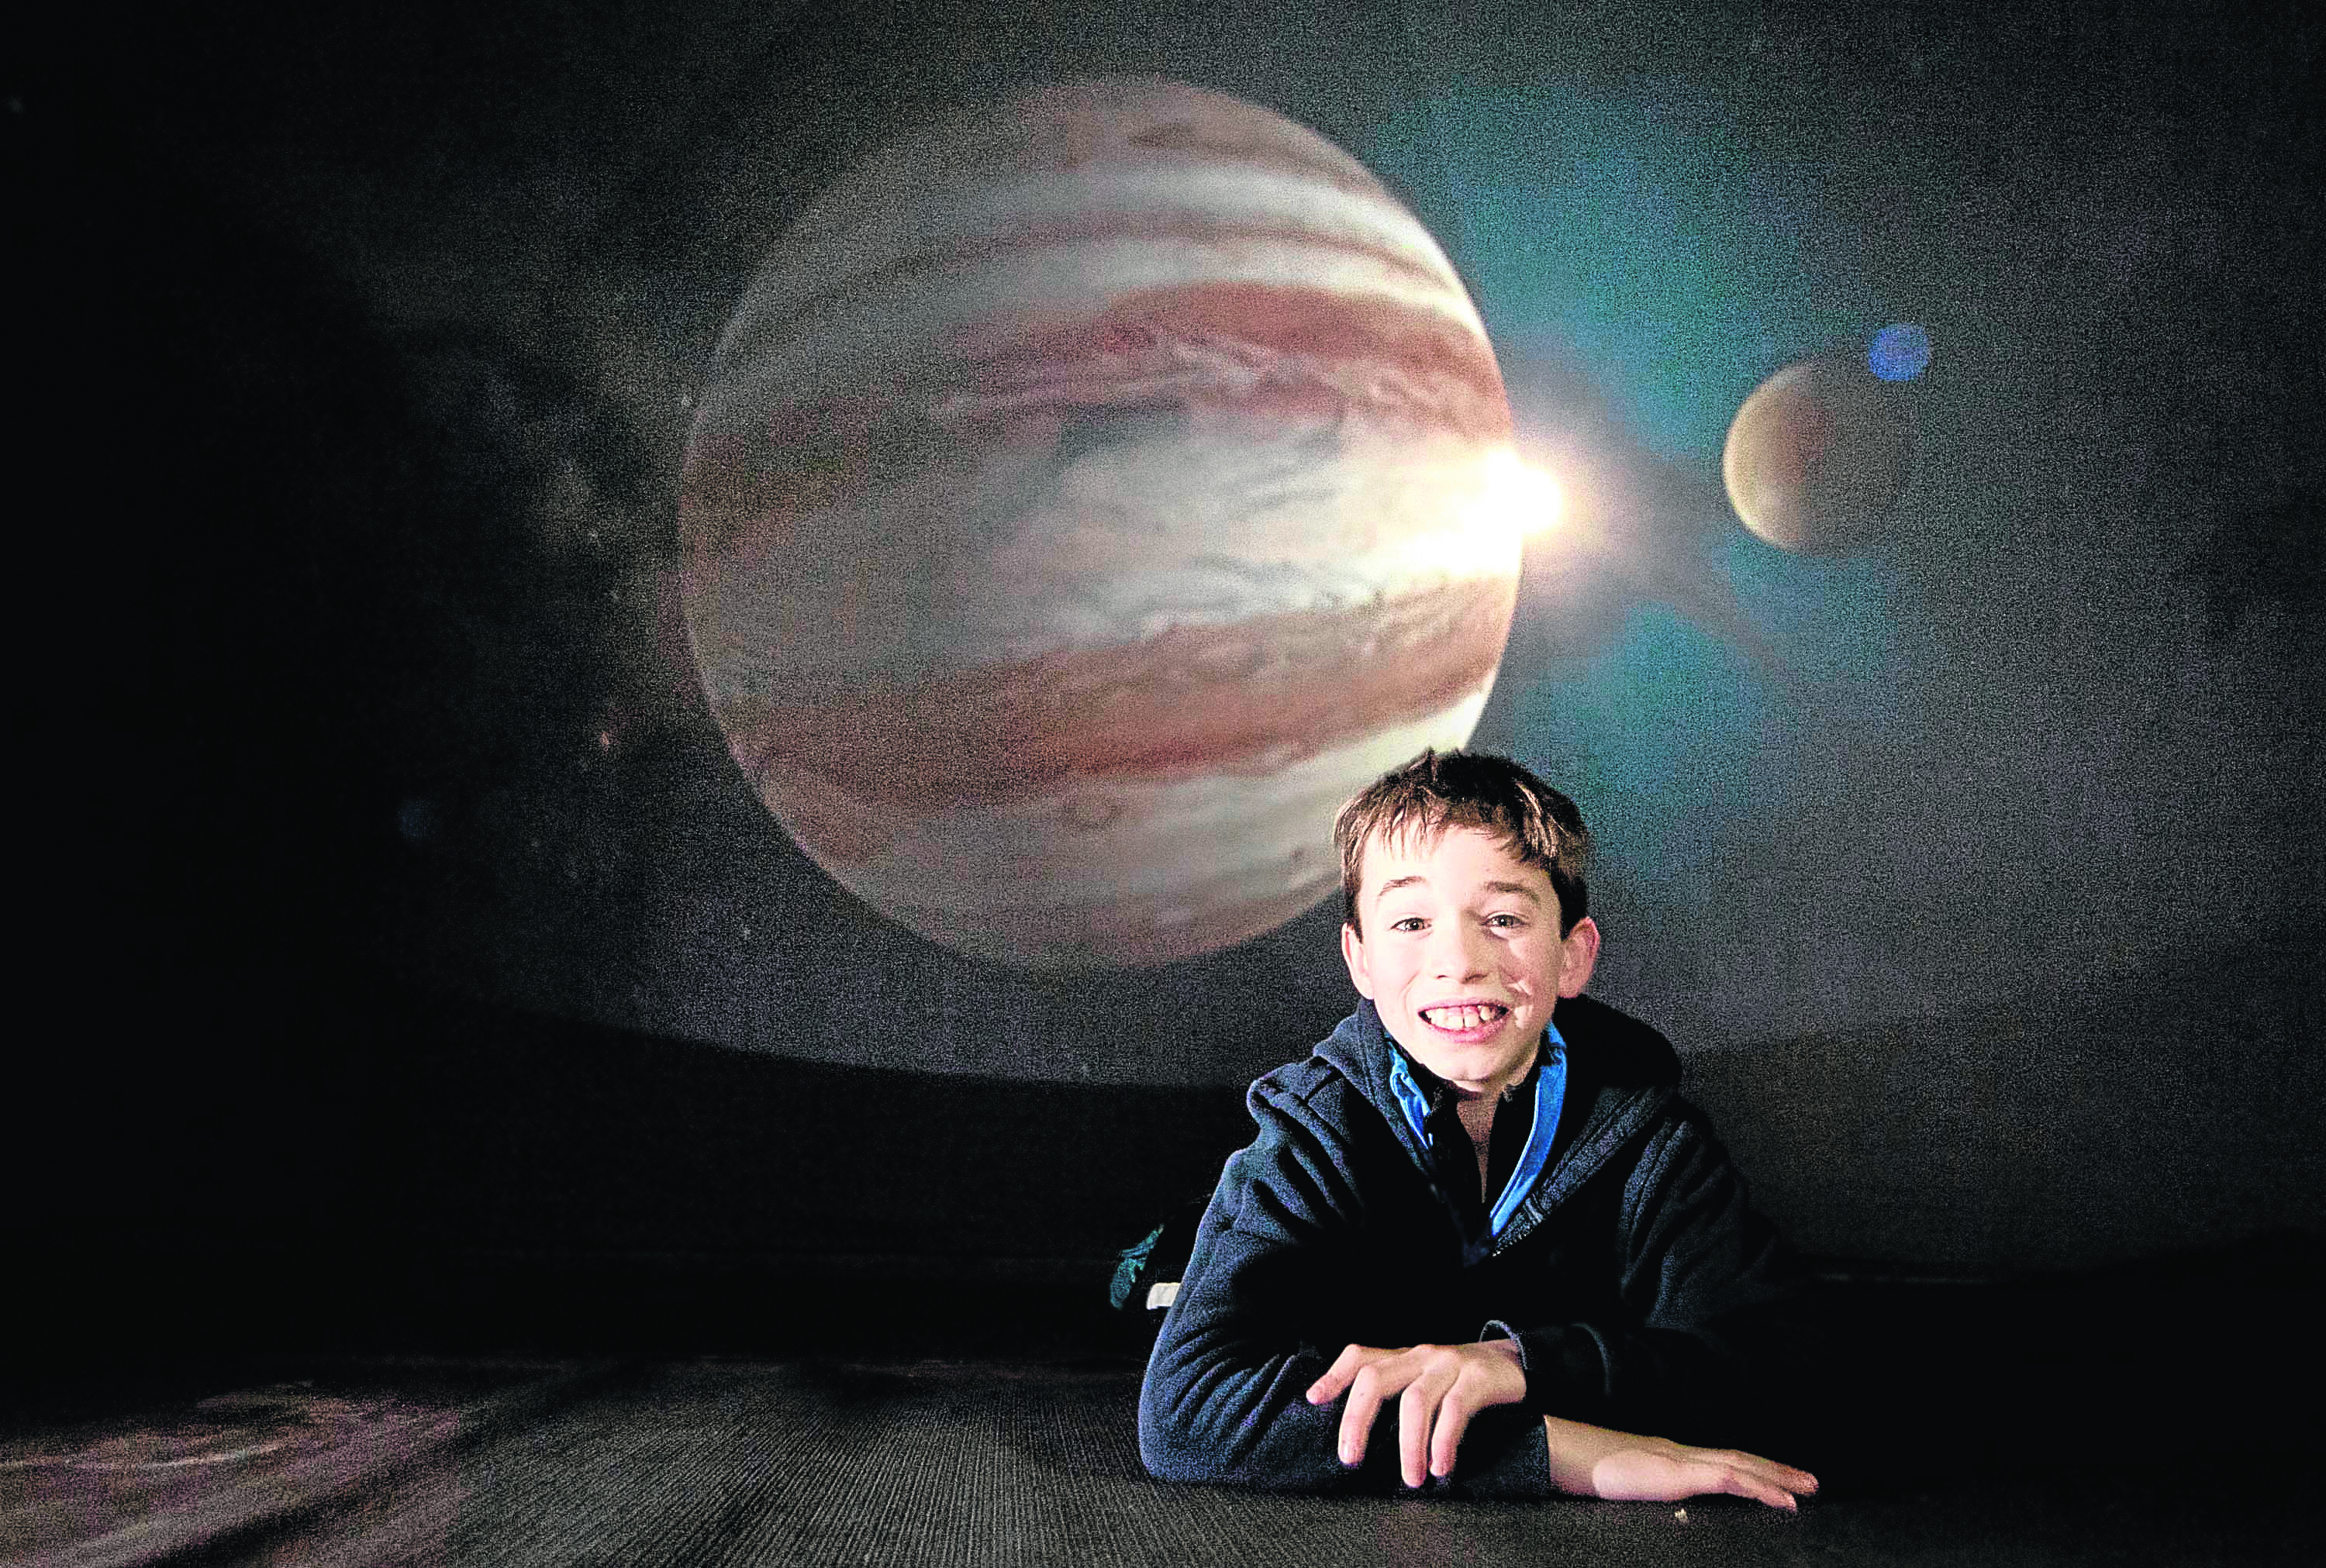 Thomas Bogie learned about the night sky at the Tomintoul and Glenlivet Landscape Partnership planetarium event.